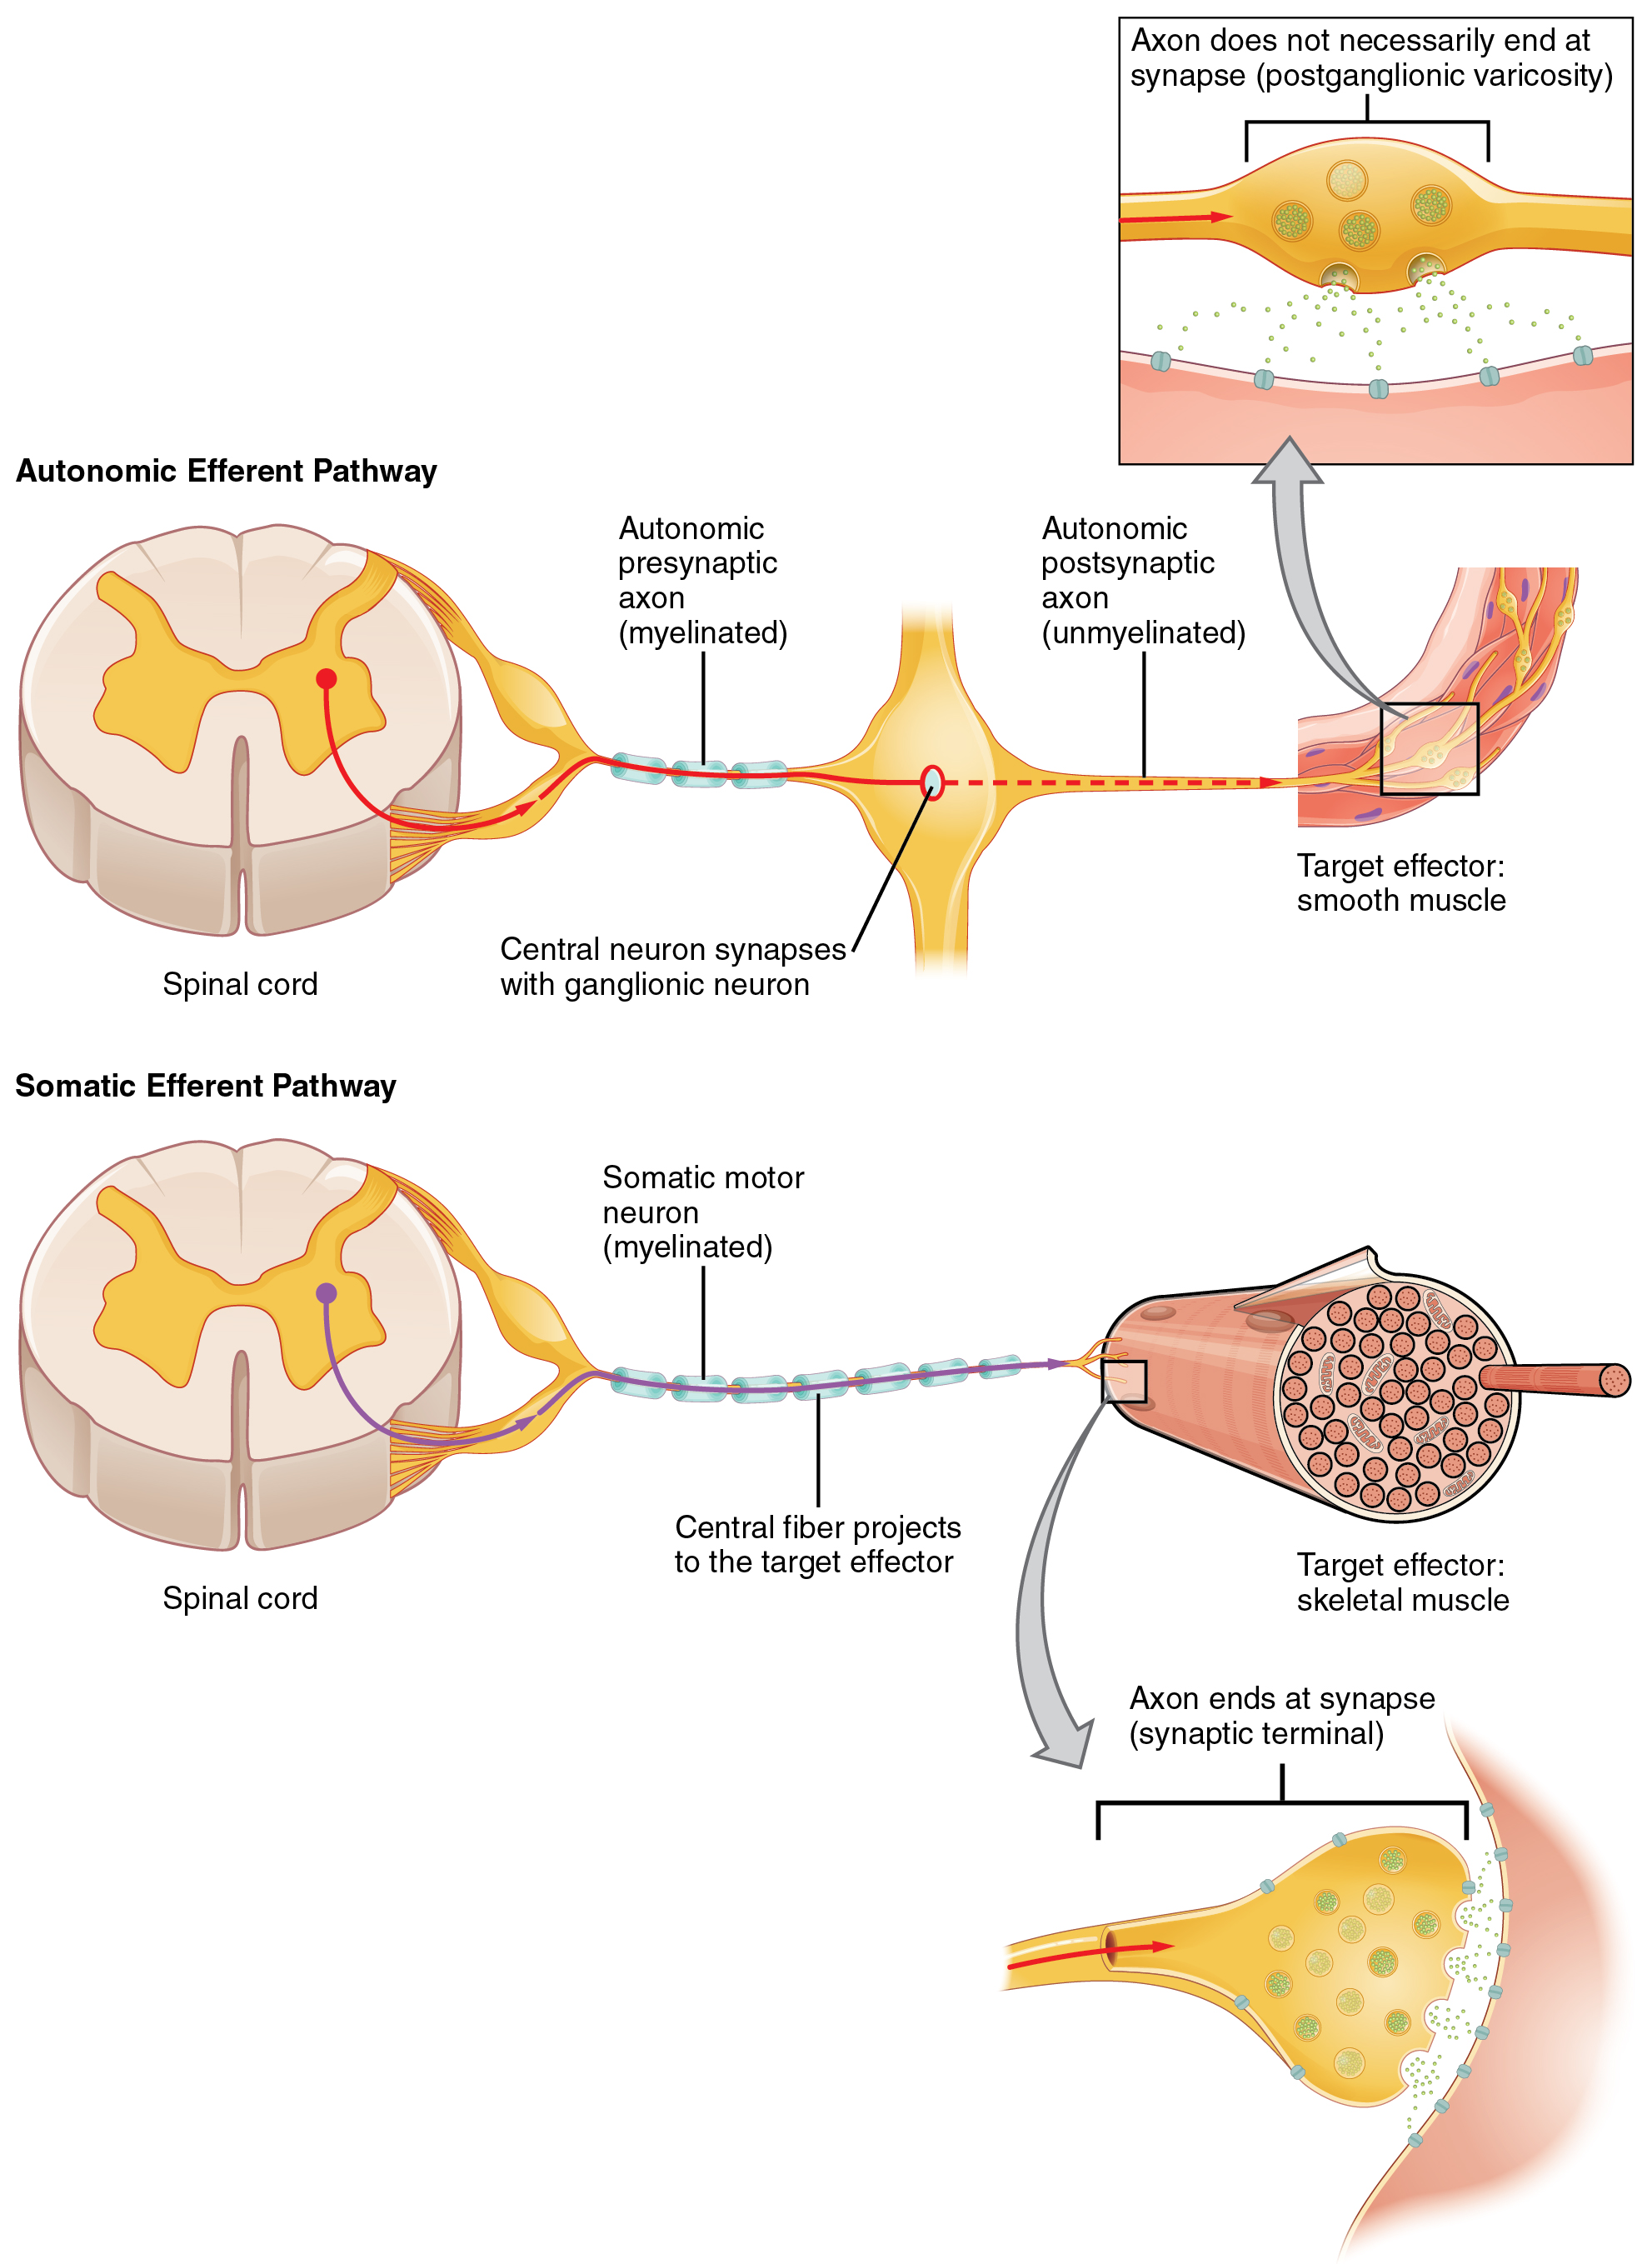 Anatomy and Physiology - Autonomic Reflexes and Homeostasis